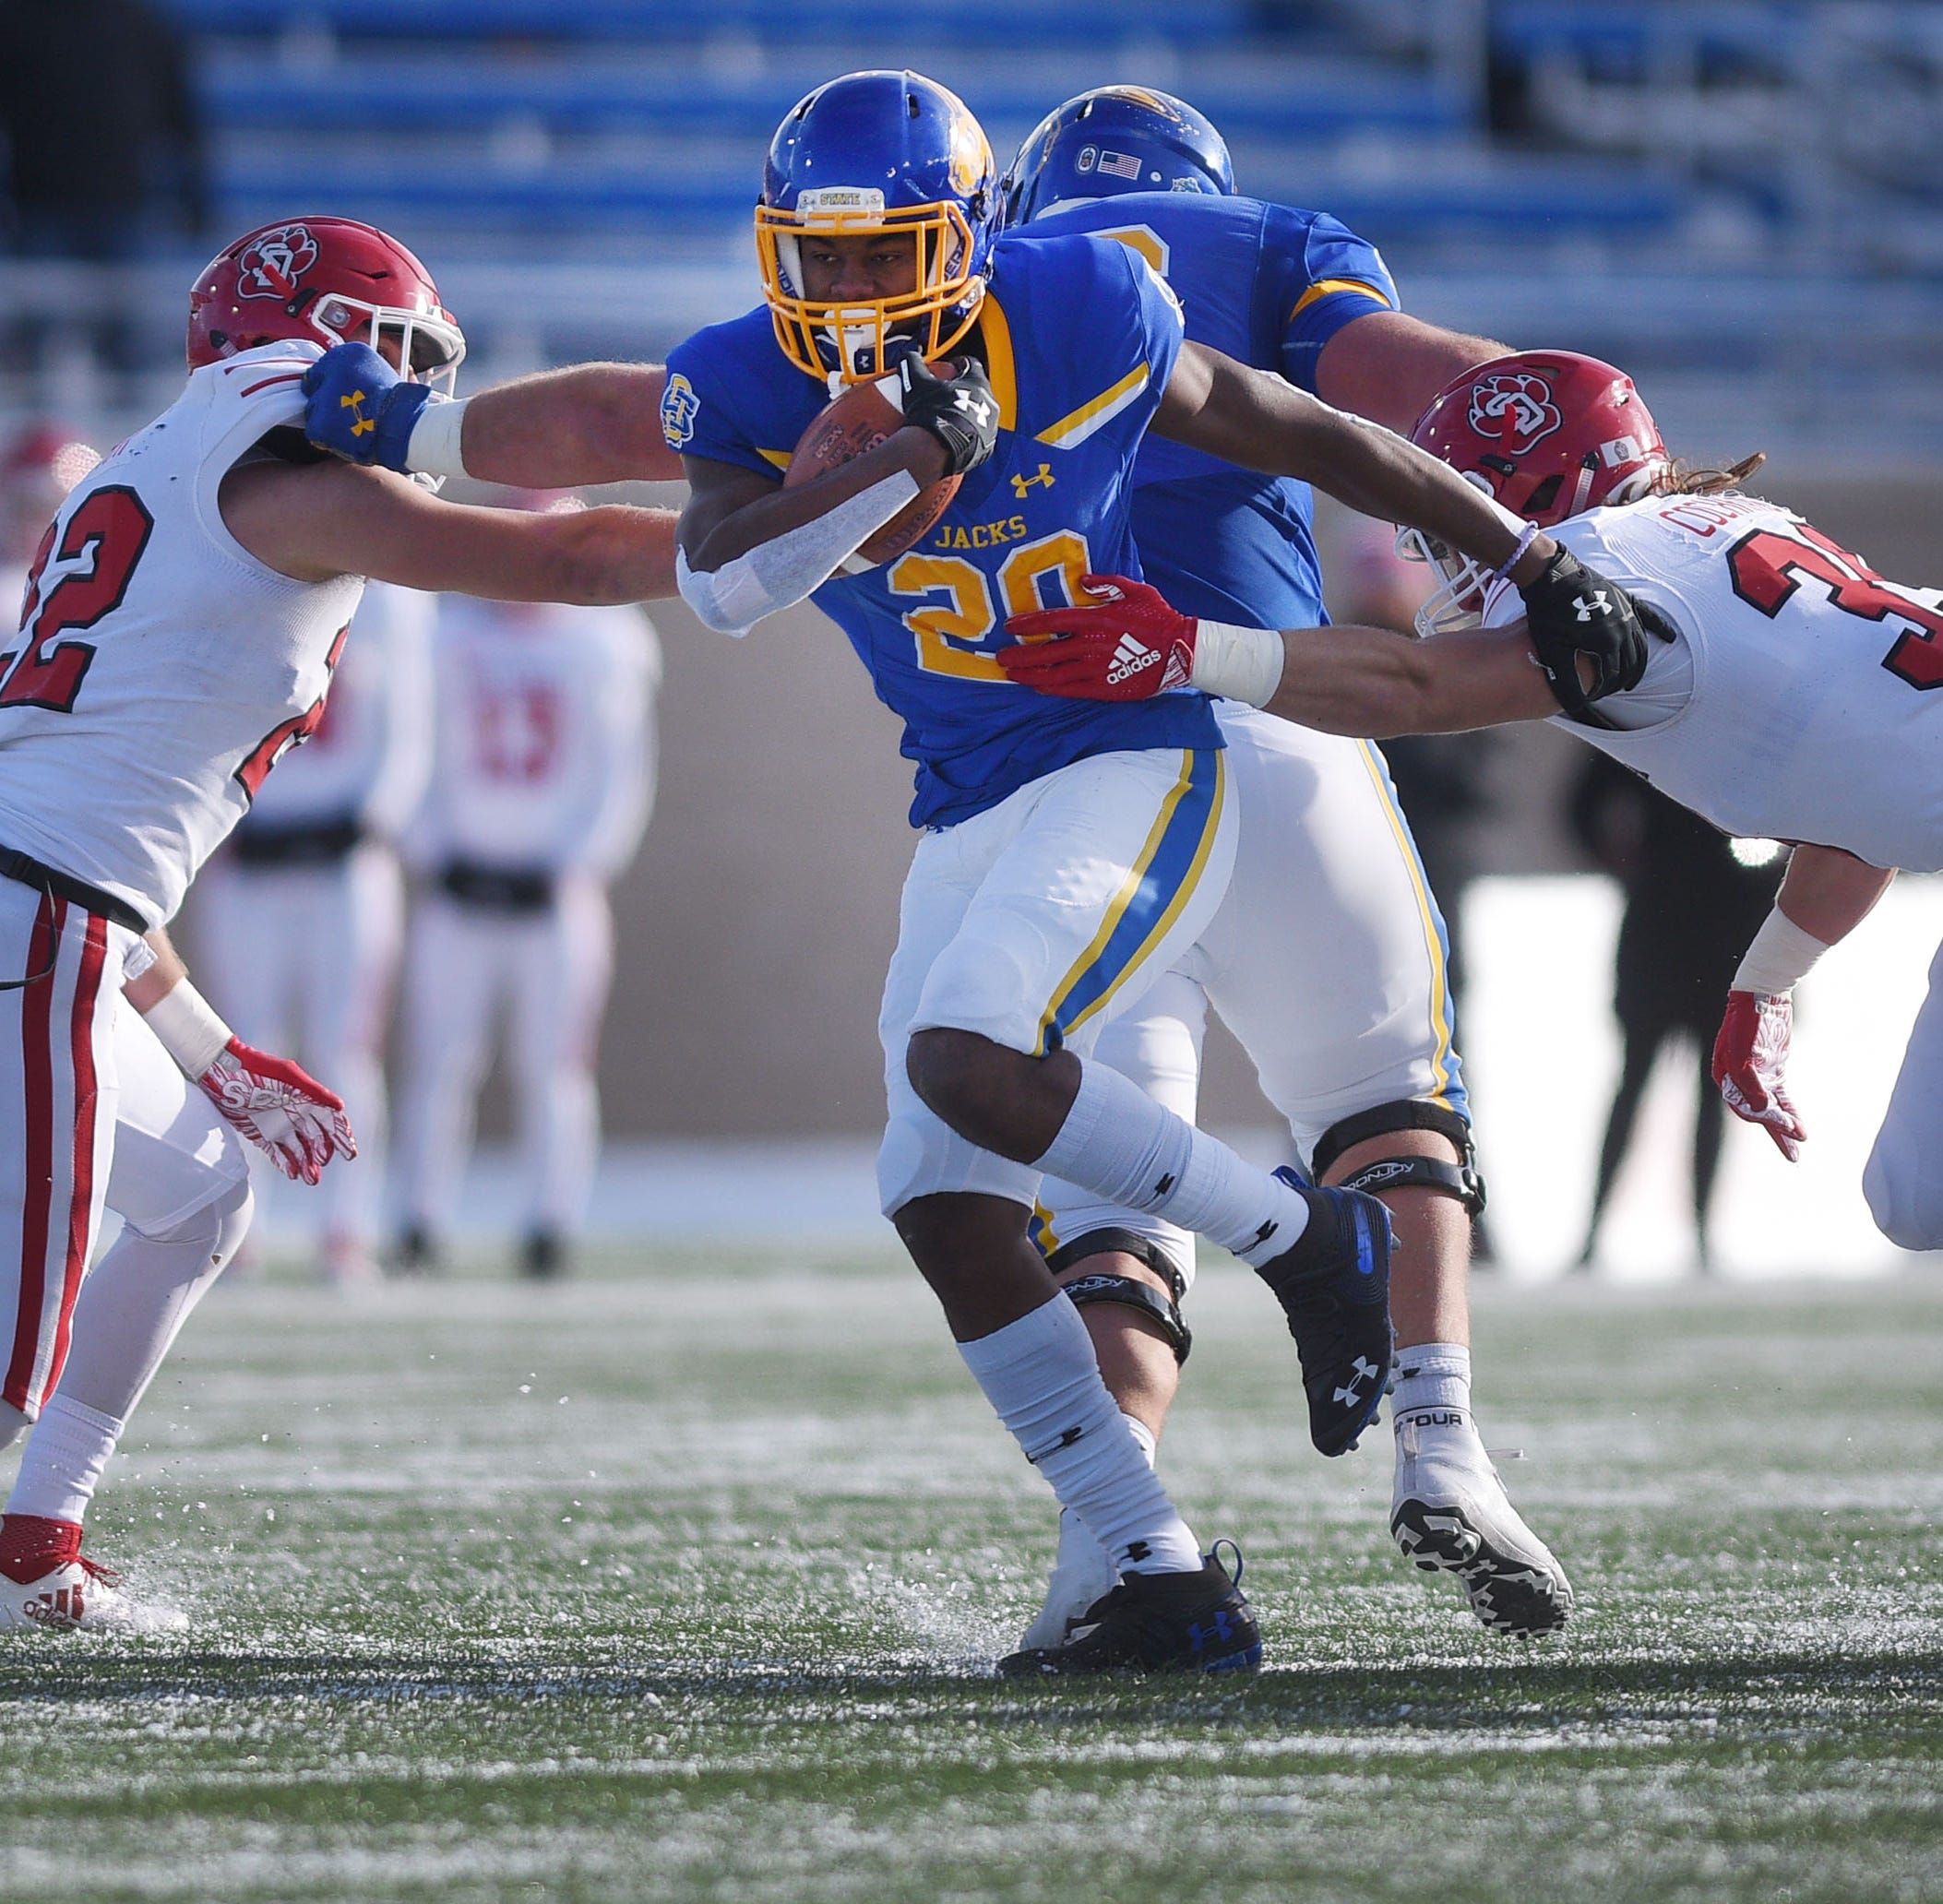 South Dakota State secures playoff bye with win over South Dakota